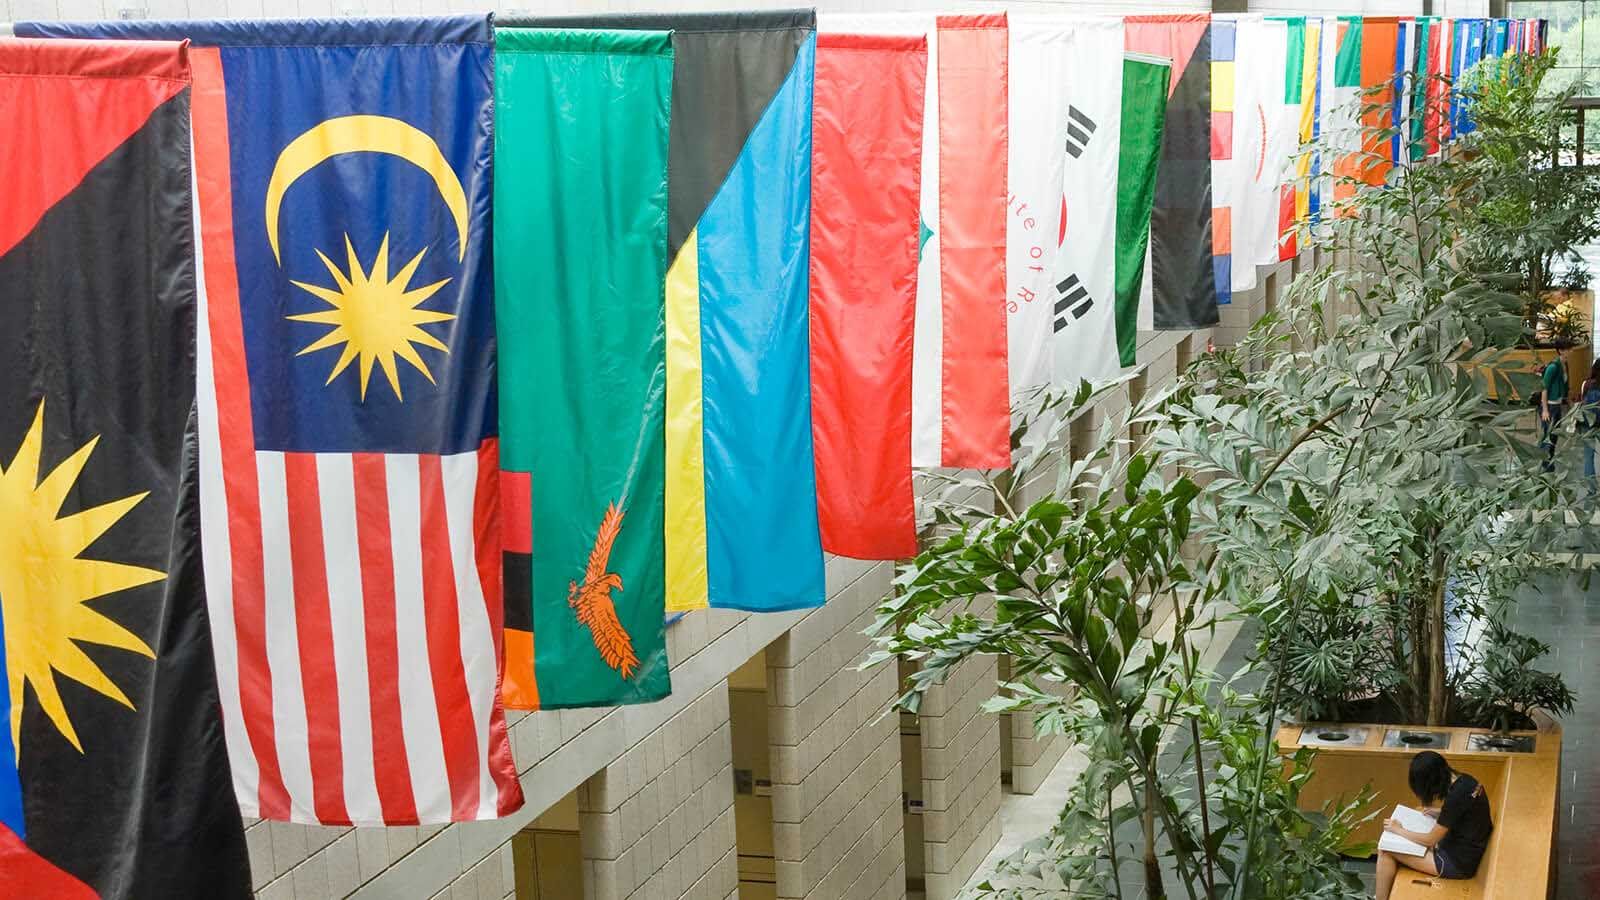 the dozens of national and other flags in the halls symbolize the diversity at Fuqua